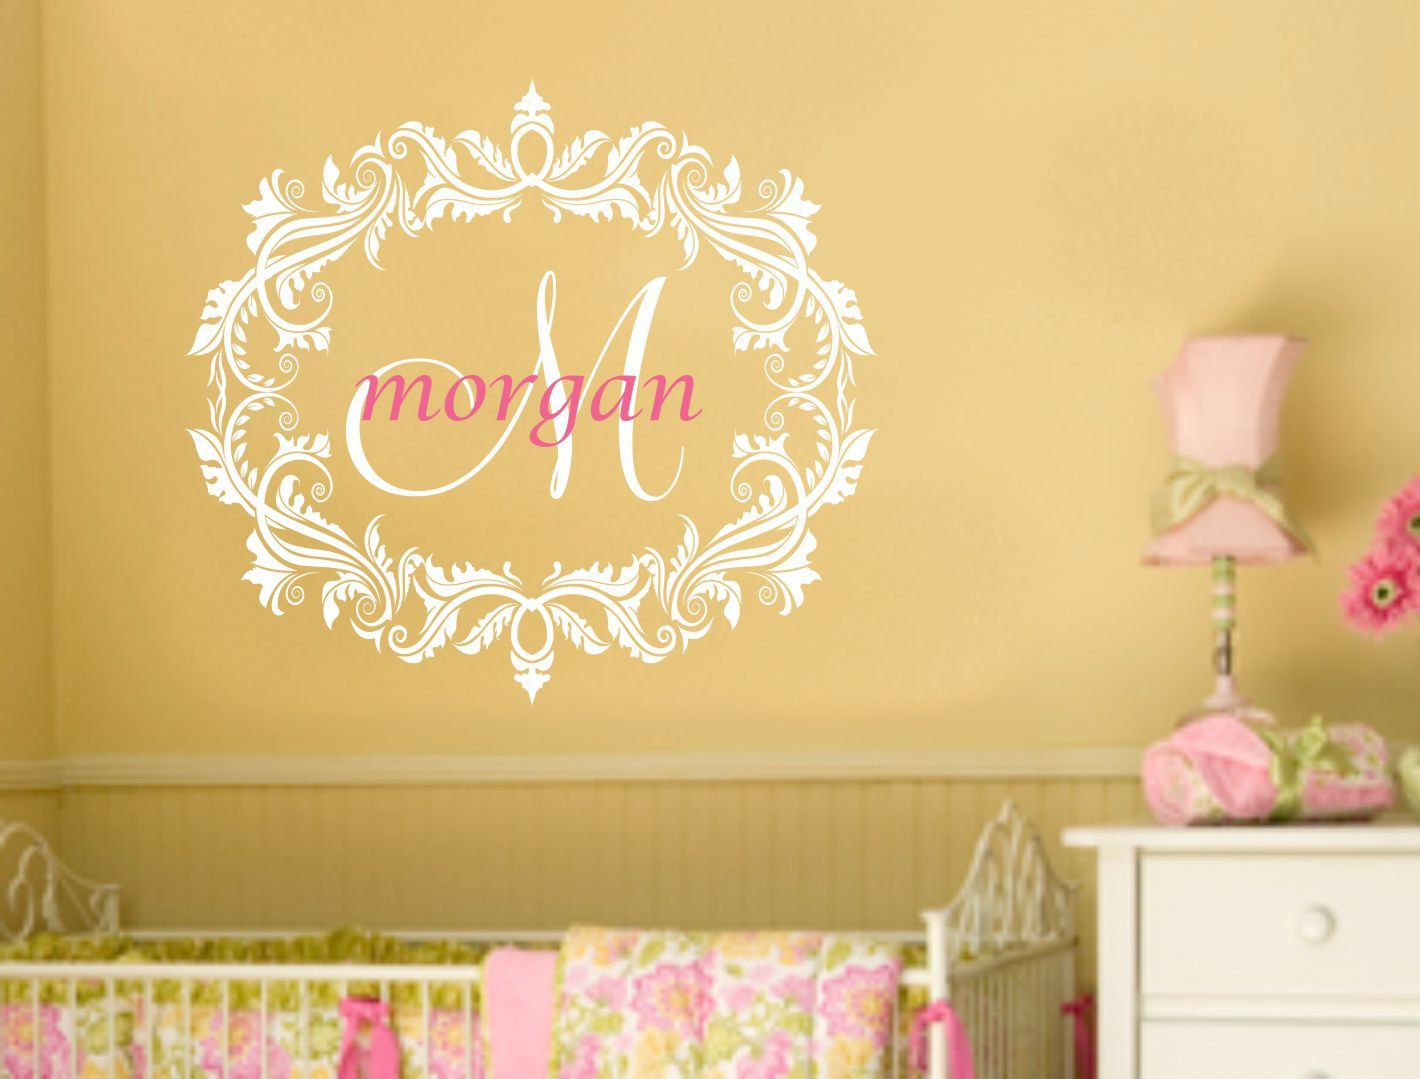 Fine Baby Monogram Wall Decor Adornment - The Wall Art Decorations ...